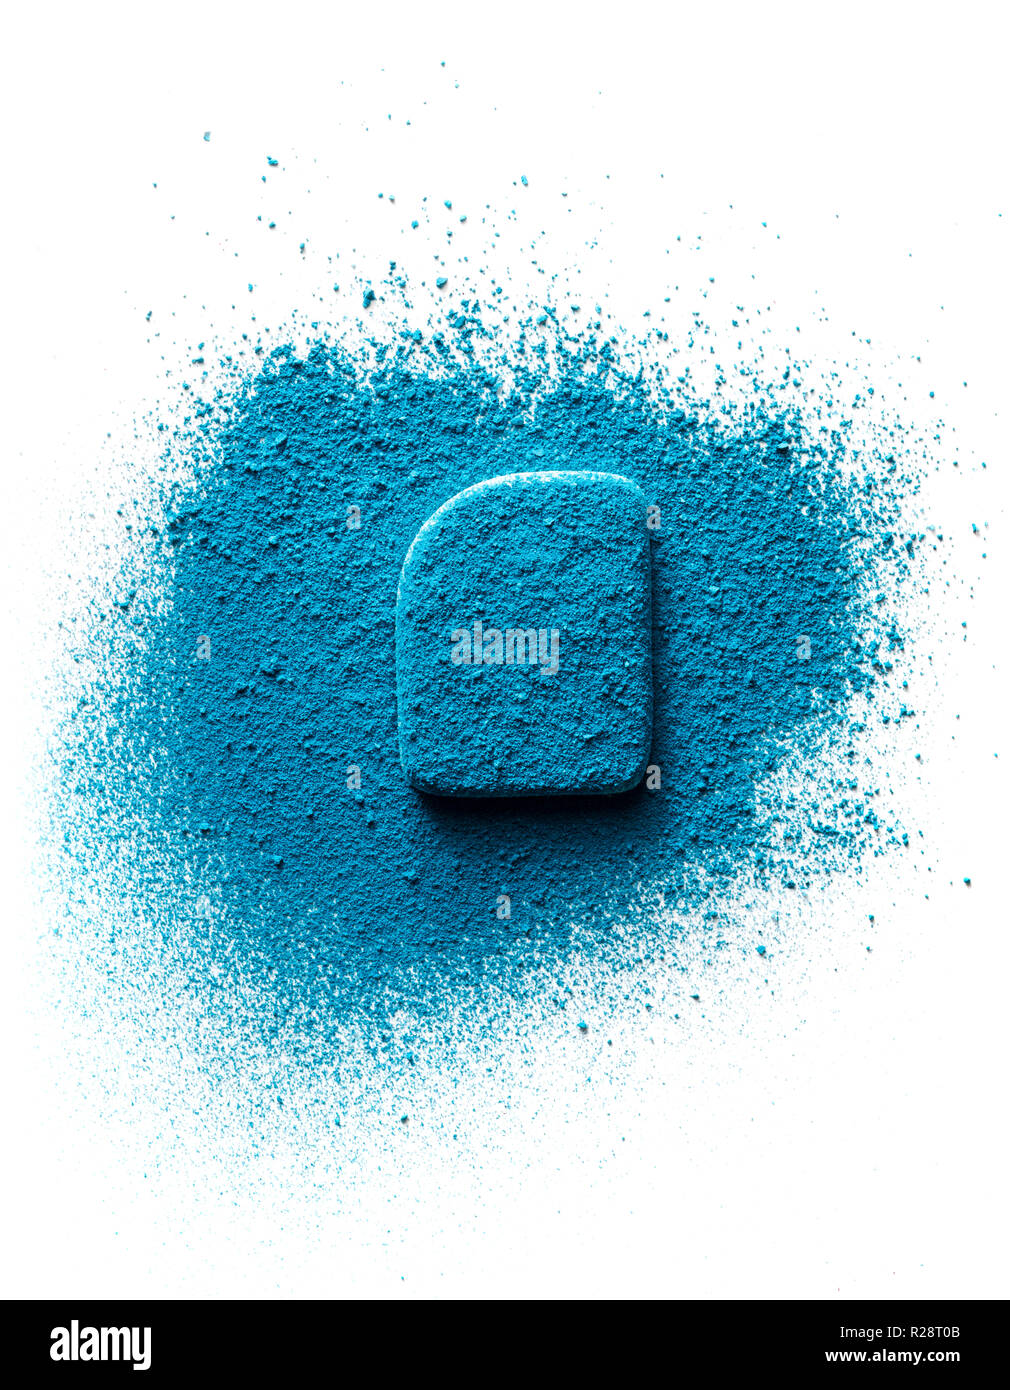 Cosmetic sponge dusted with blue eyeshadow. Isolated on white background. Cosmetic concept - Stock Image